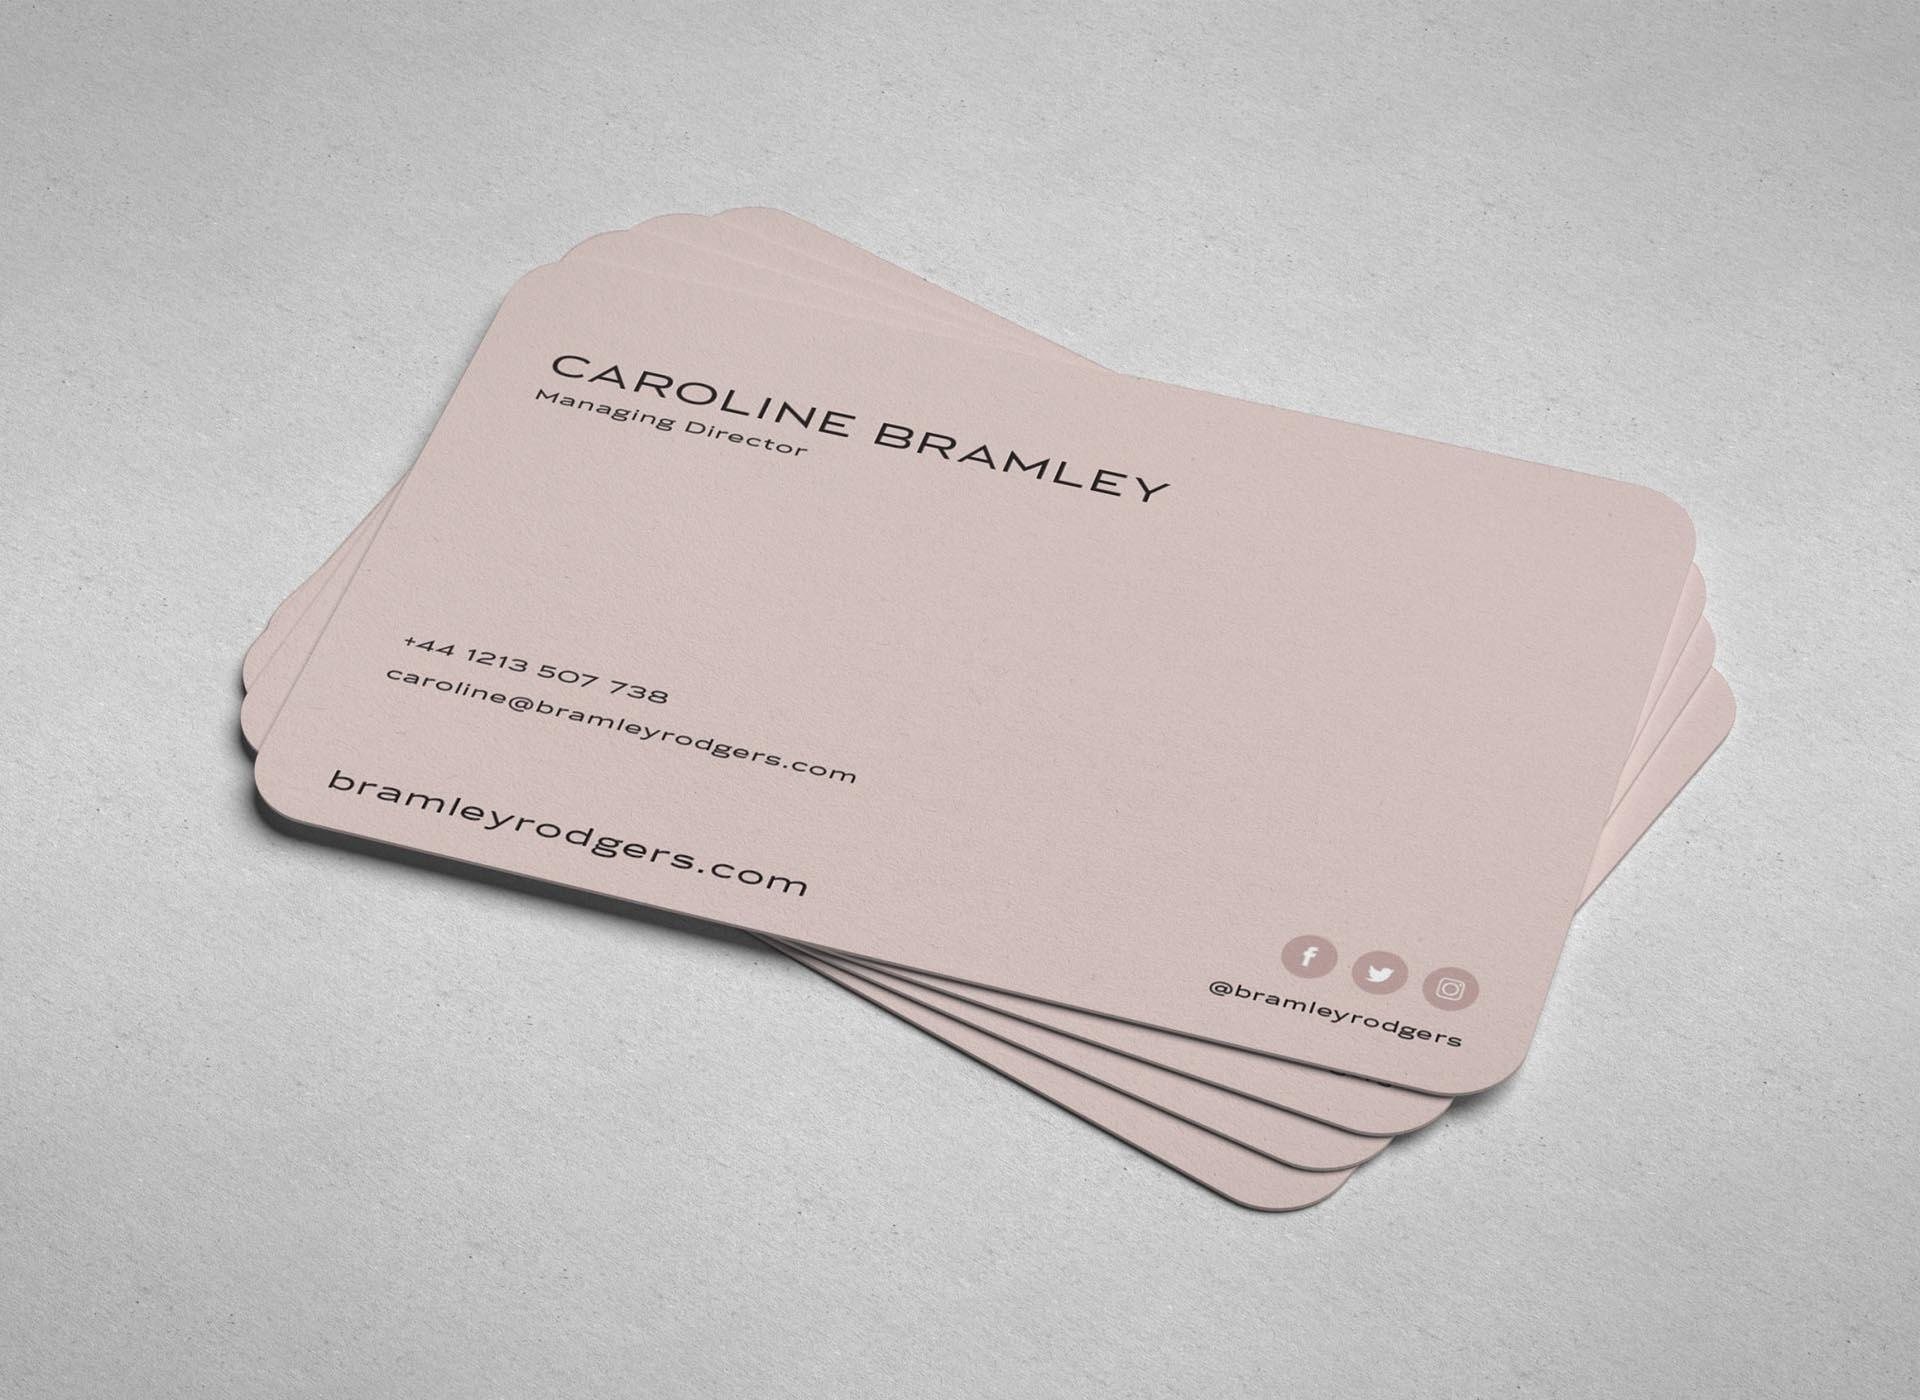 branding_0000_0001_Business_Card_Mockup_0.jpg-scaled.jpg